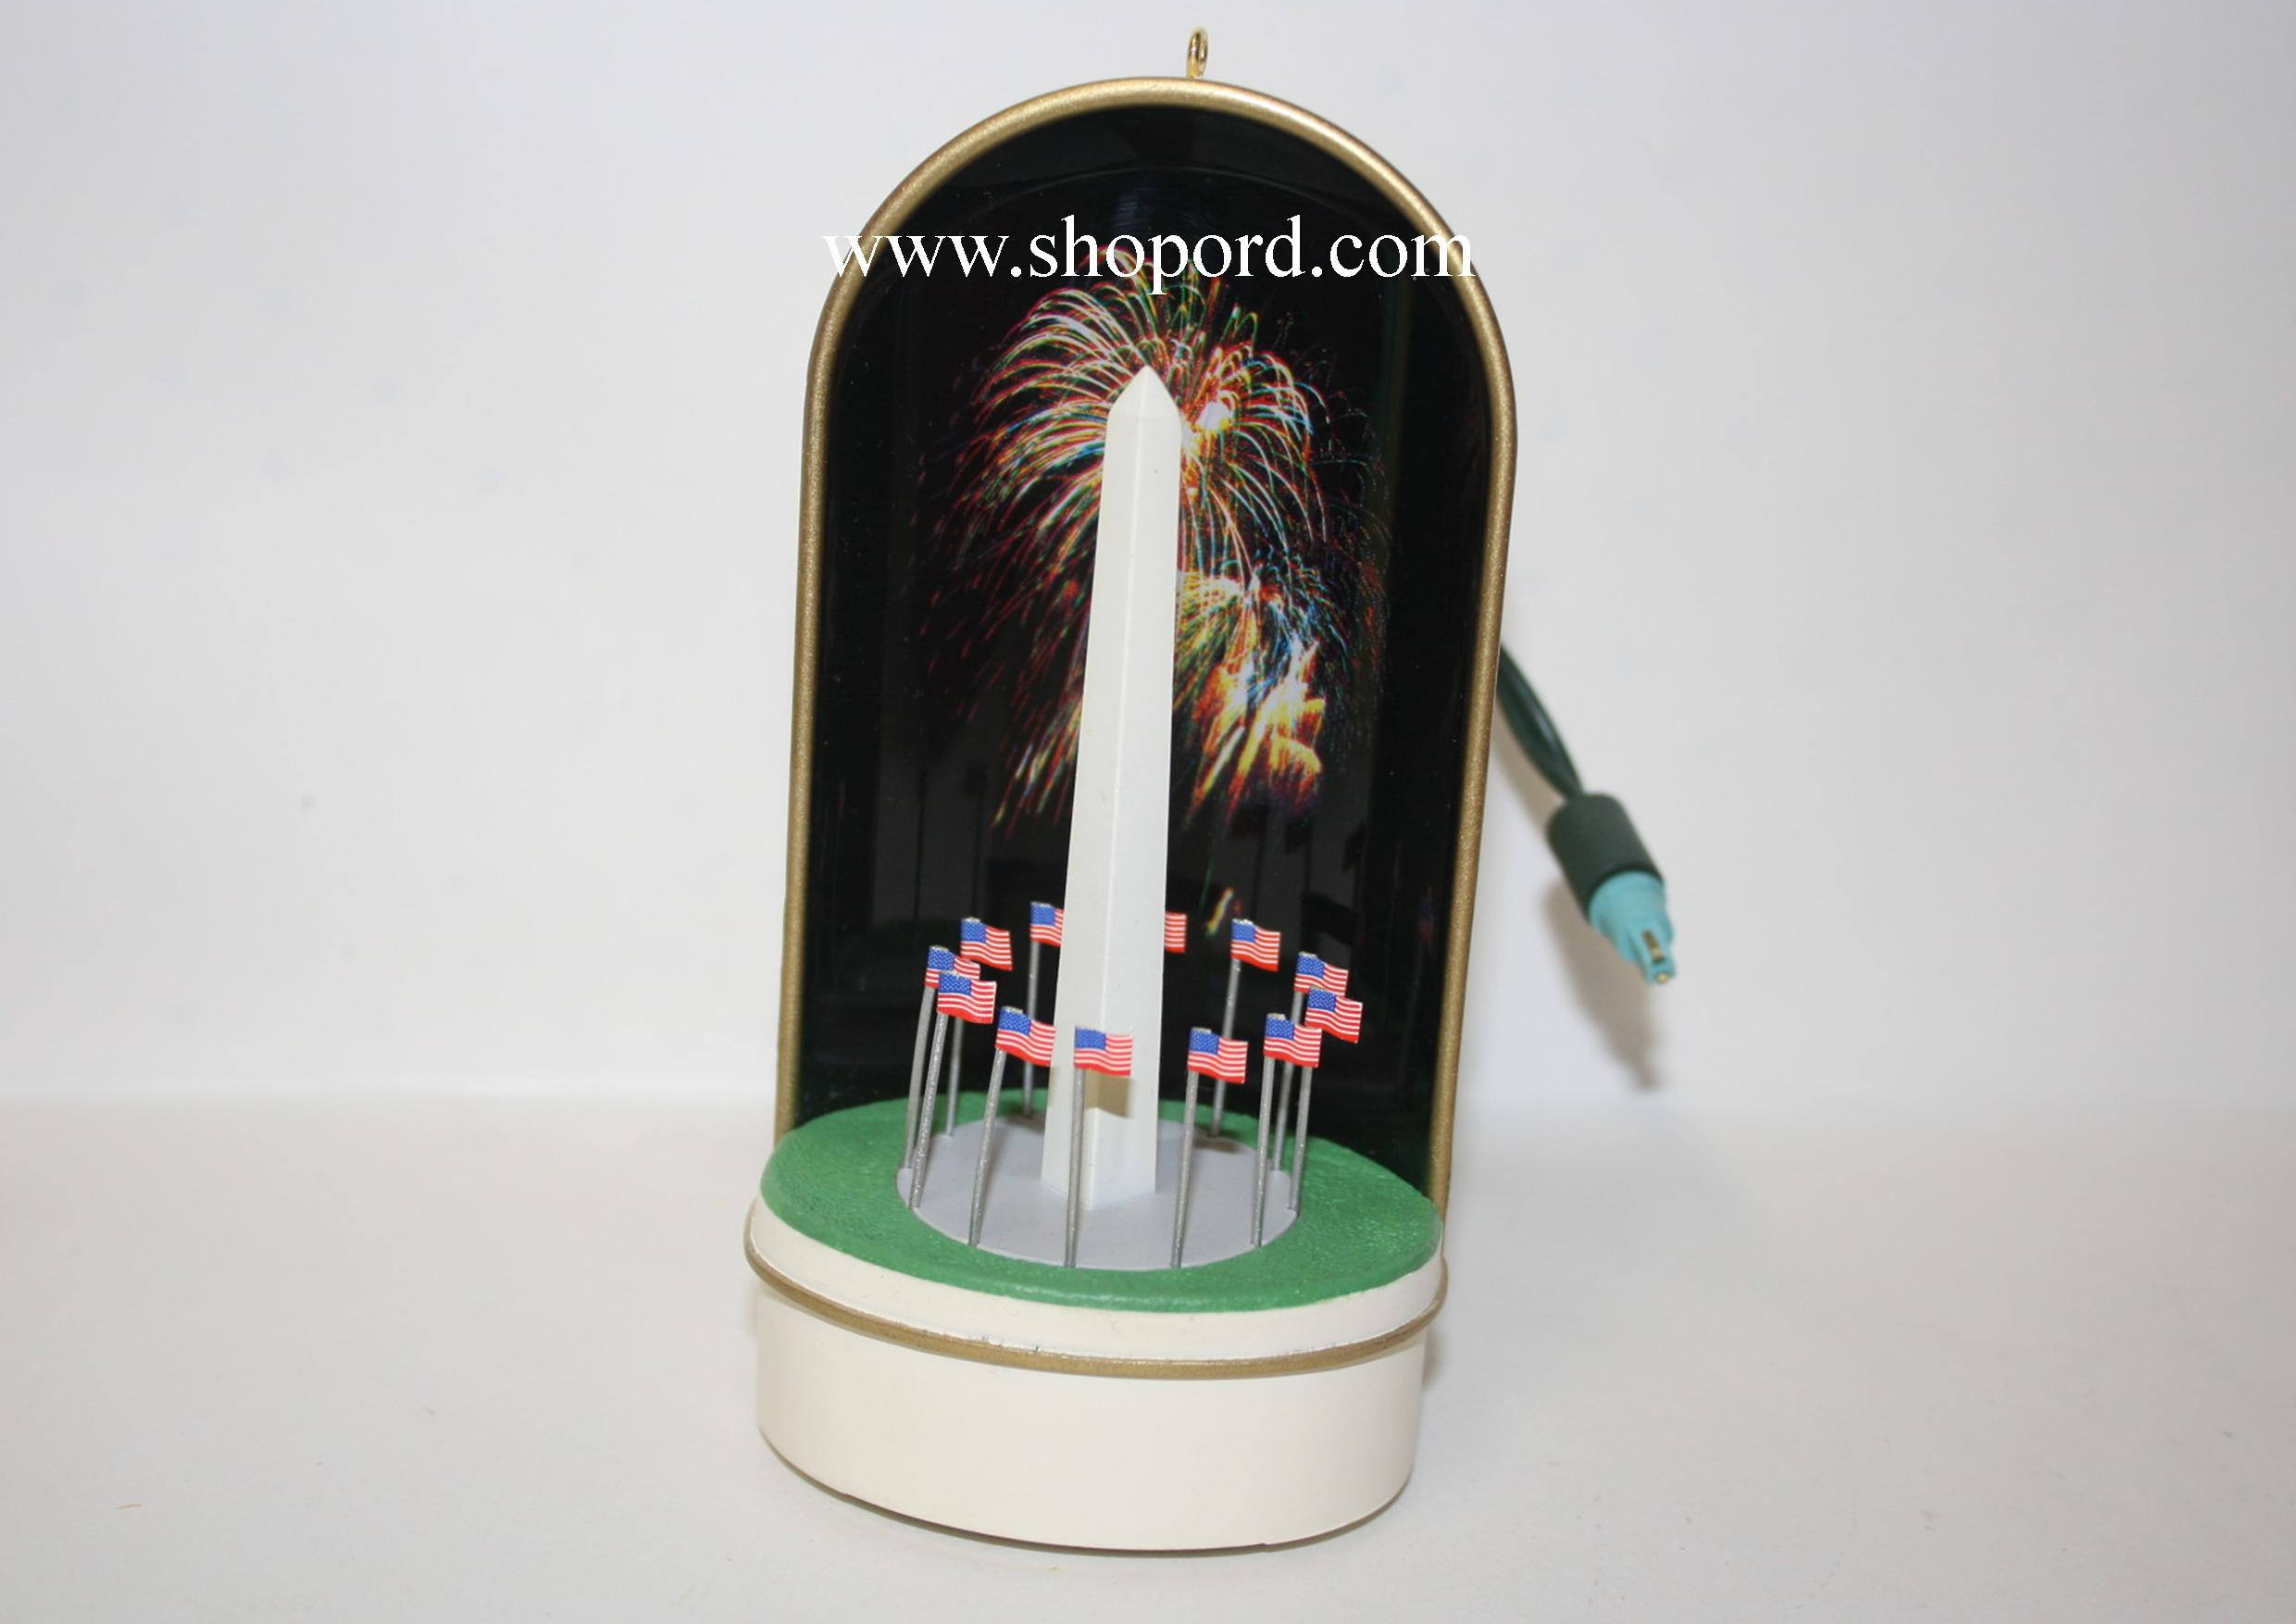 Hallmark 1998 The Washington Monument Ornament QLX7553